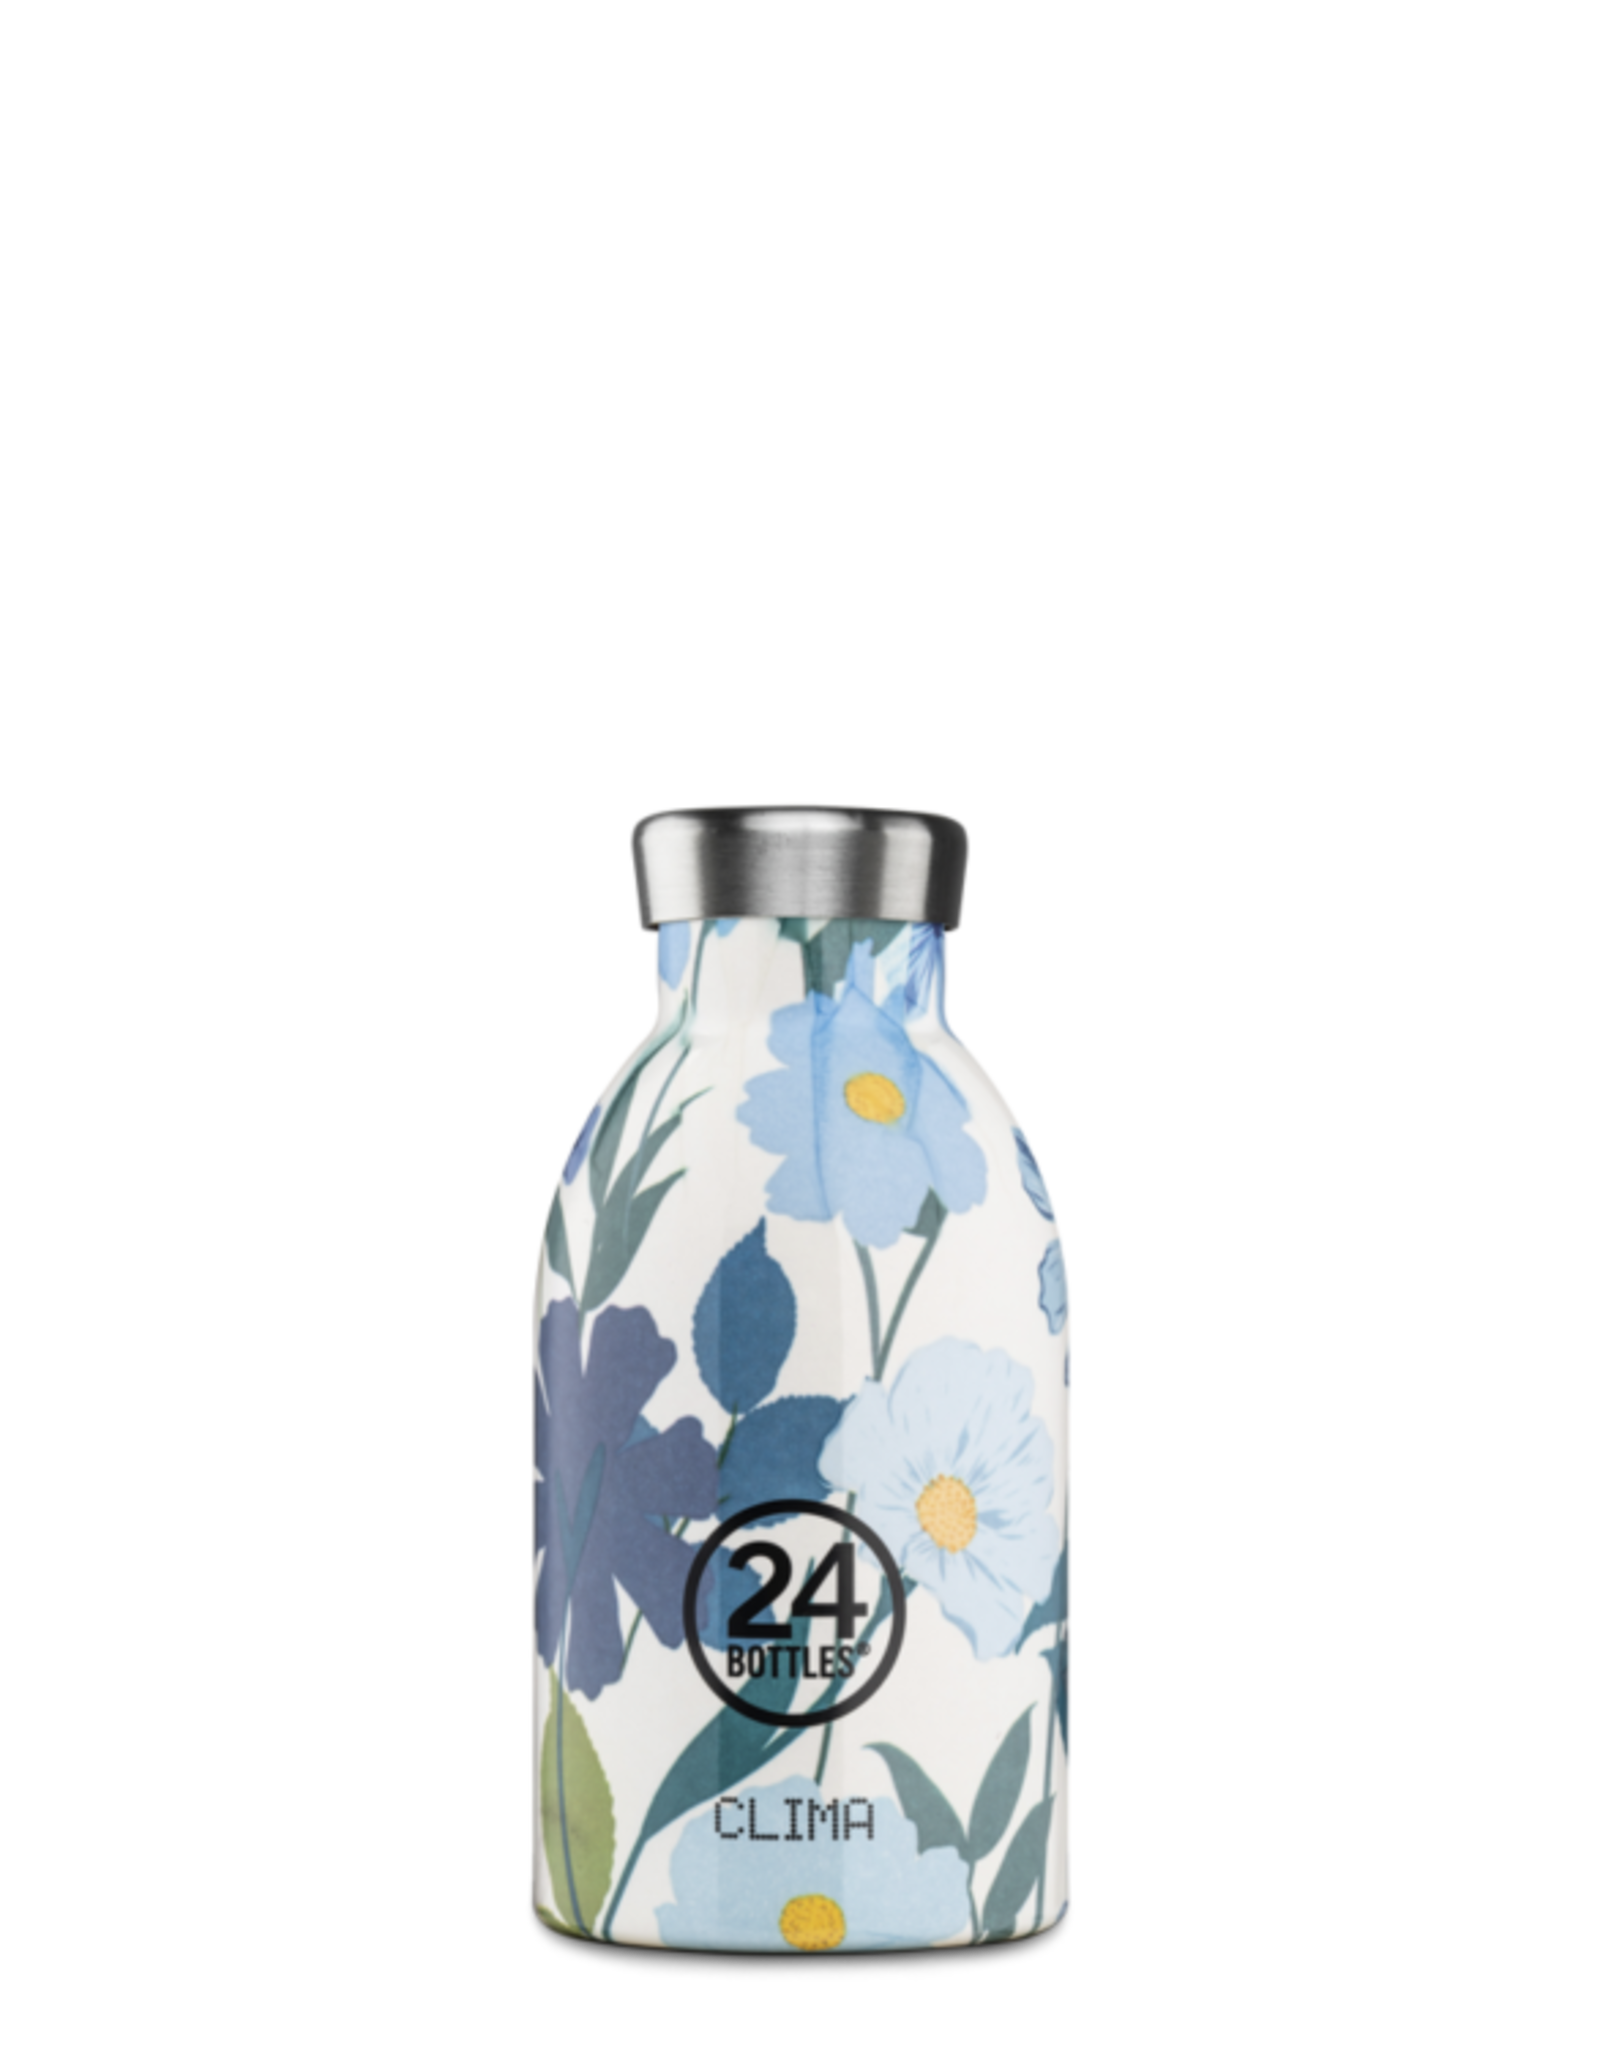 24 Bottles 24 Bottles - Clima bottle Morning Glory 330ml